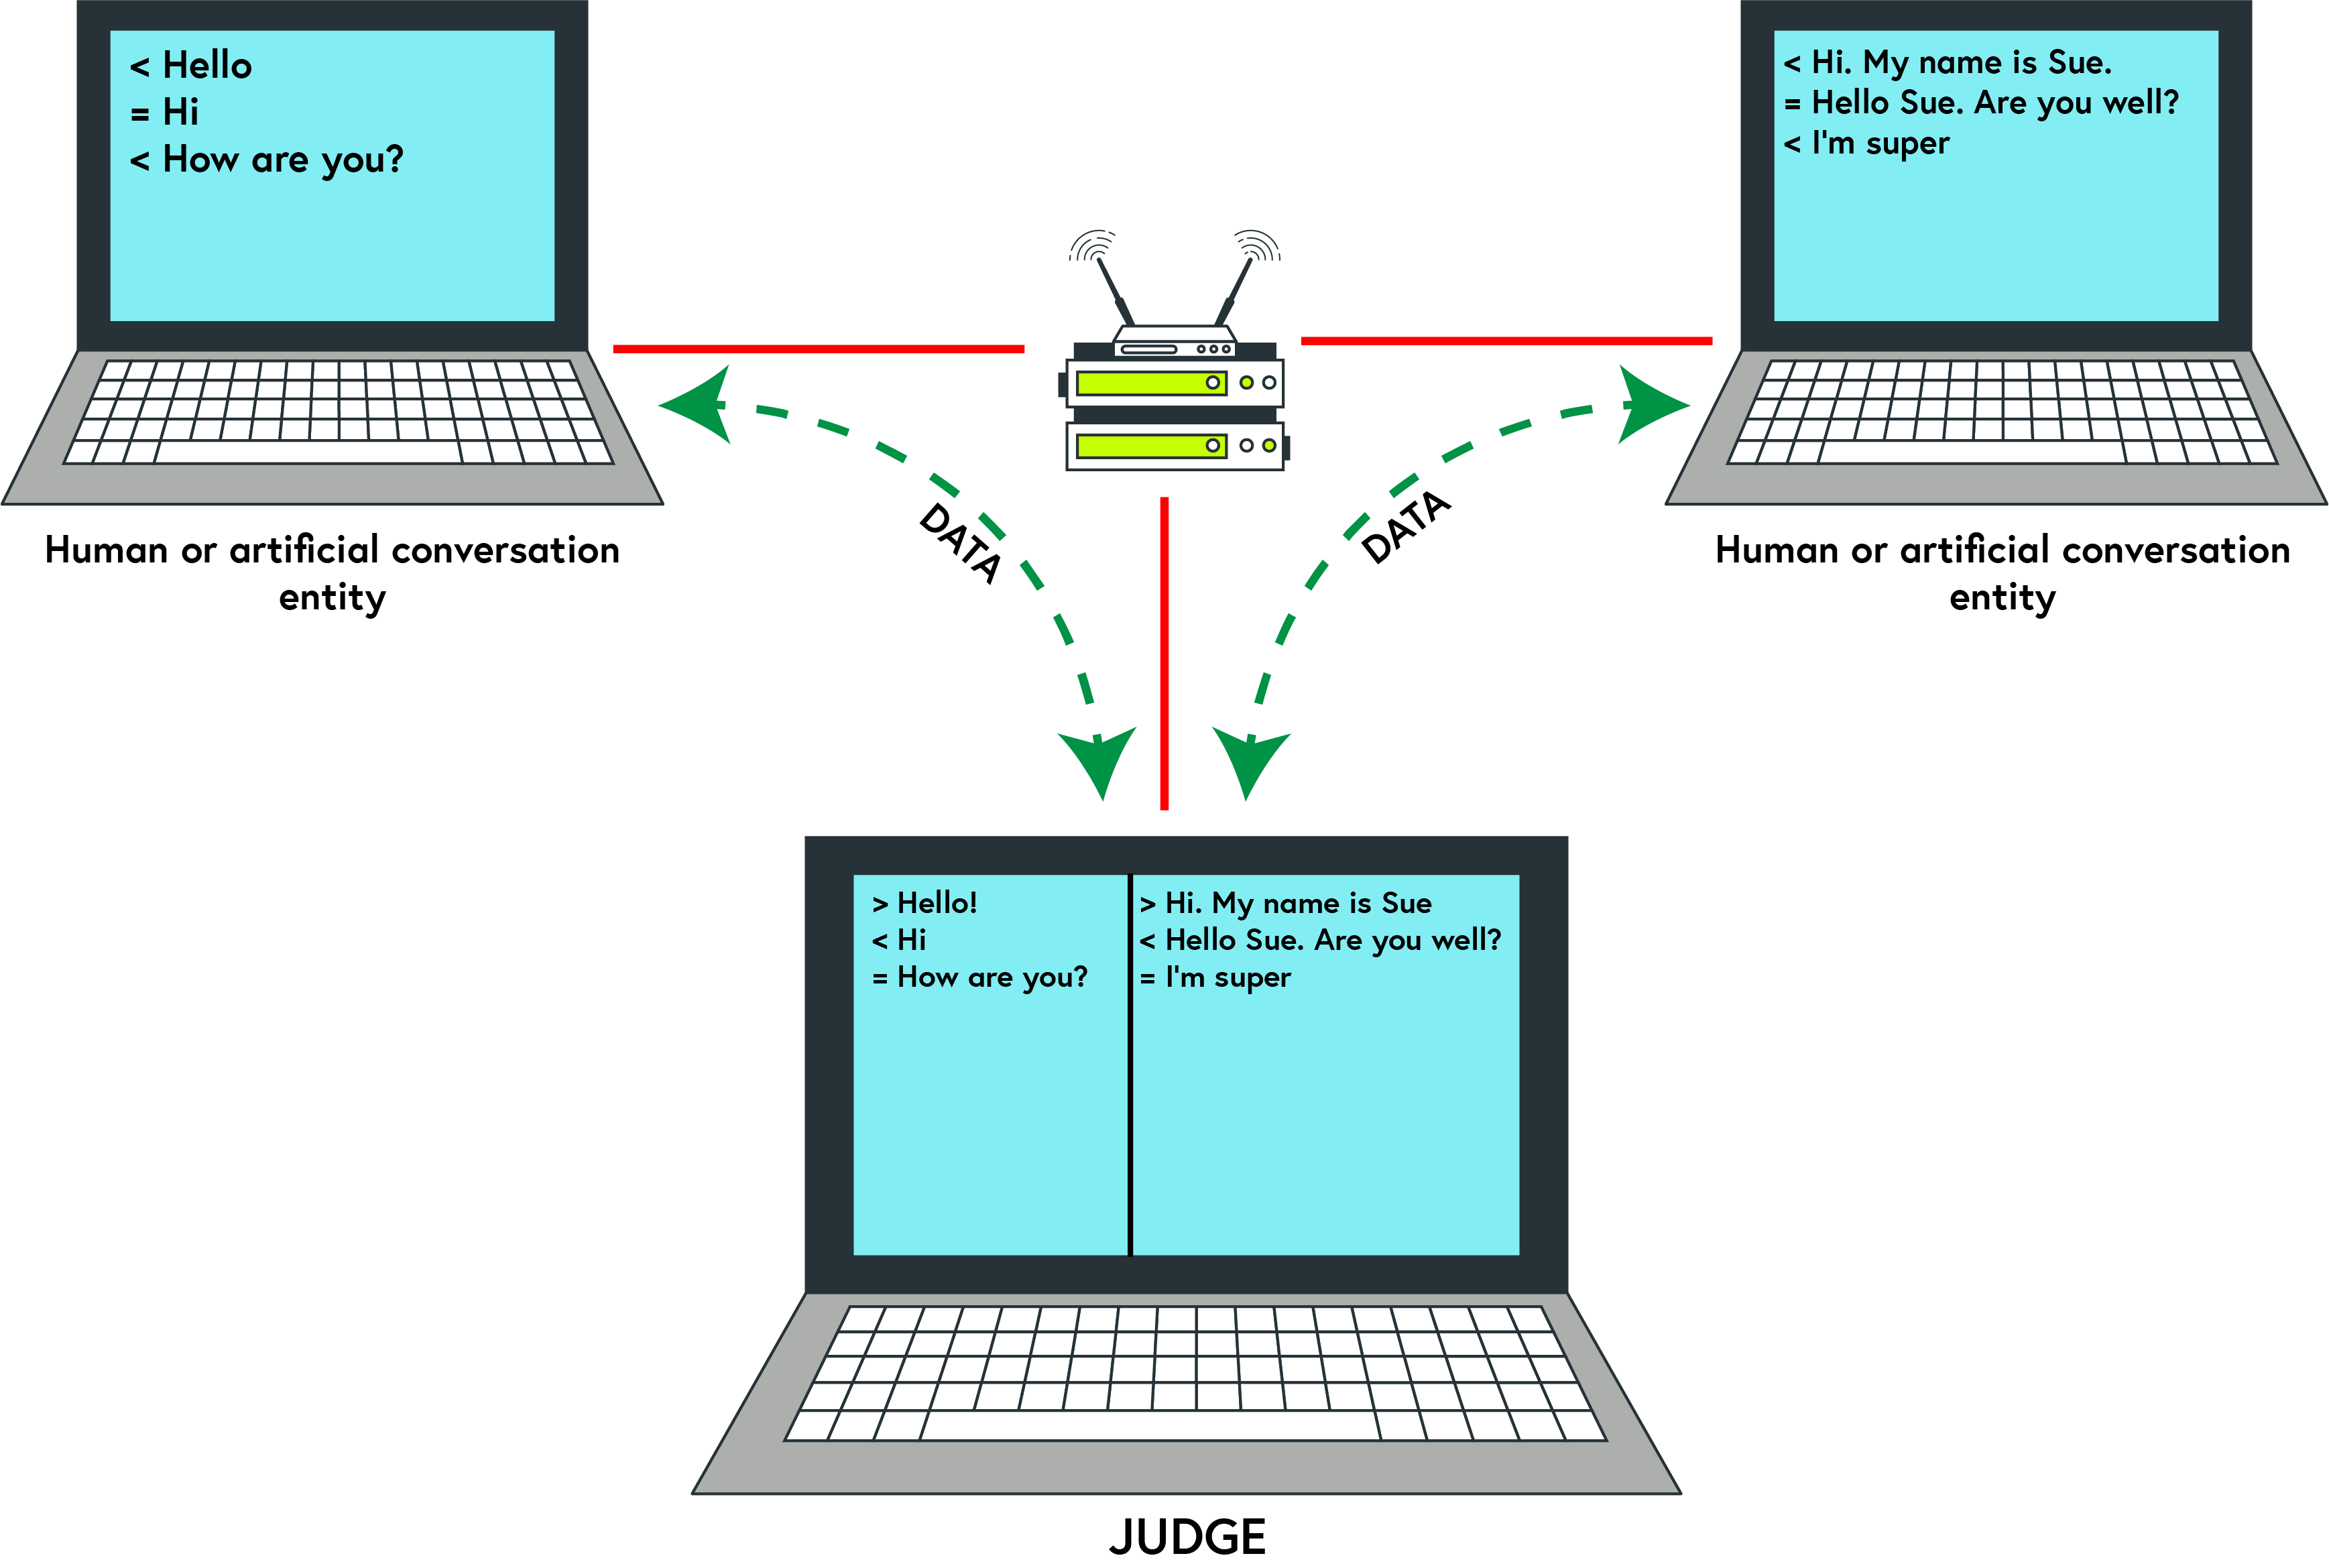 This image shows two computer screens, each showing half a conversation (their response). The data from each computer feeds into a 'judge' computer that needs to correctly identify which data represents human or artificial conversation.